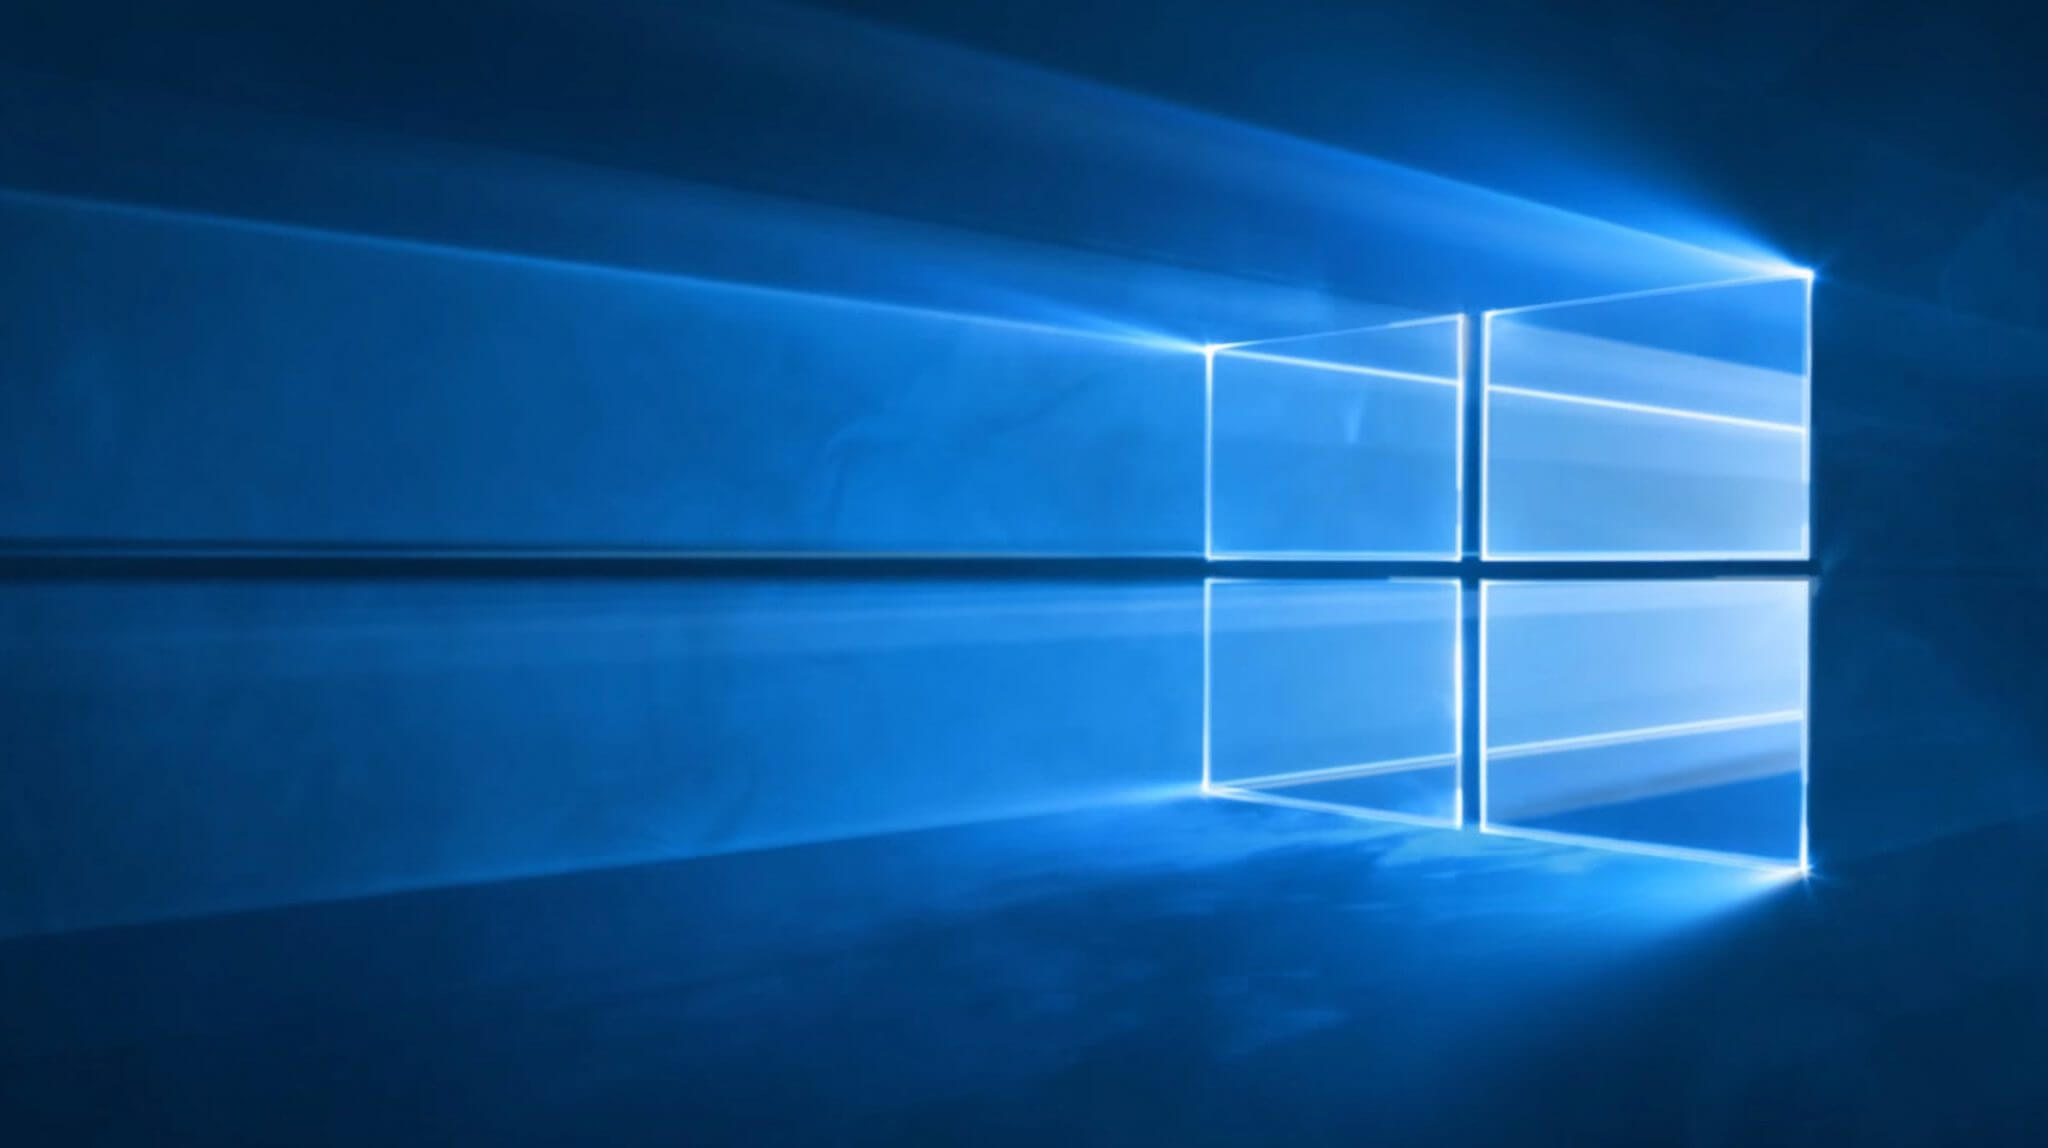 Windows 10 wallpaper reduz